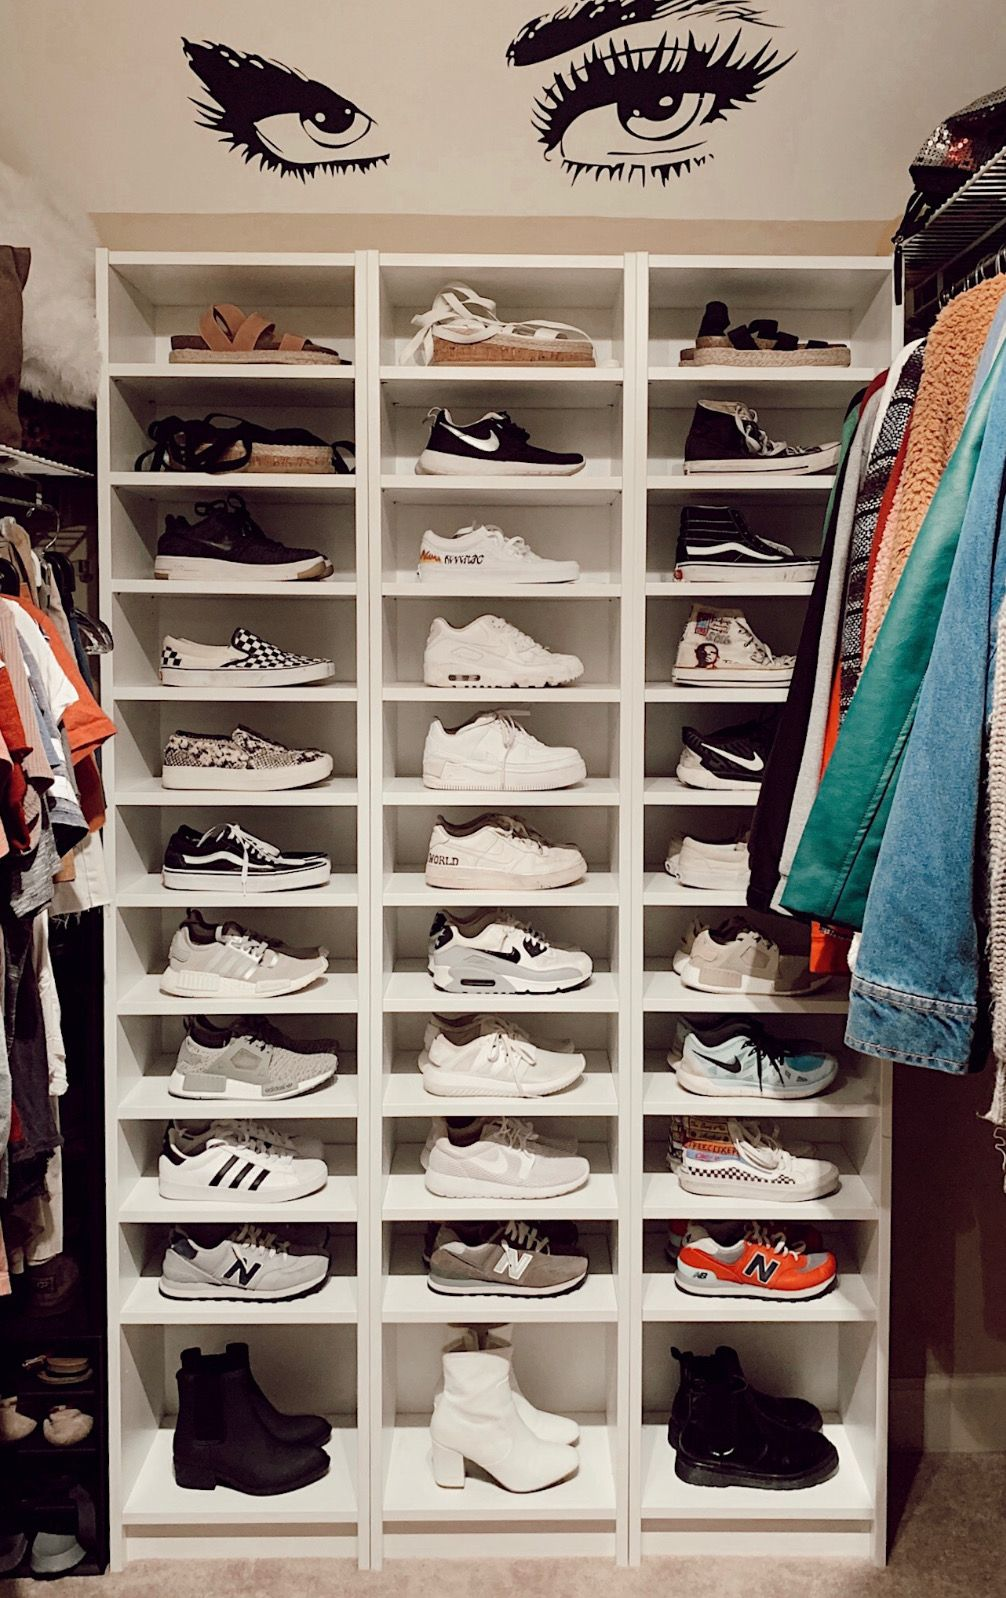 Pin by havala stanley on shoes | Shoe room, Shoe wall, Shoe